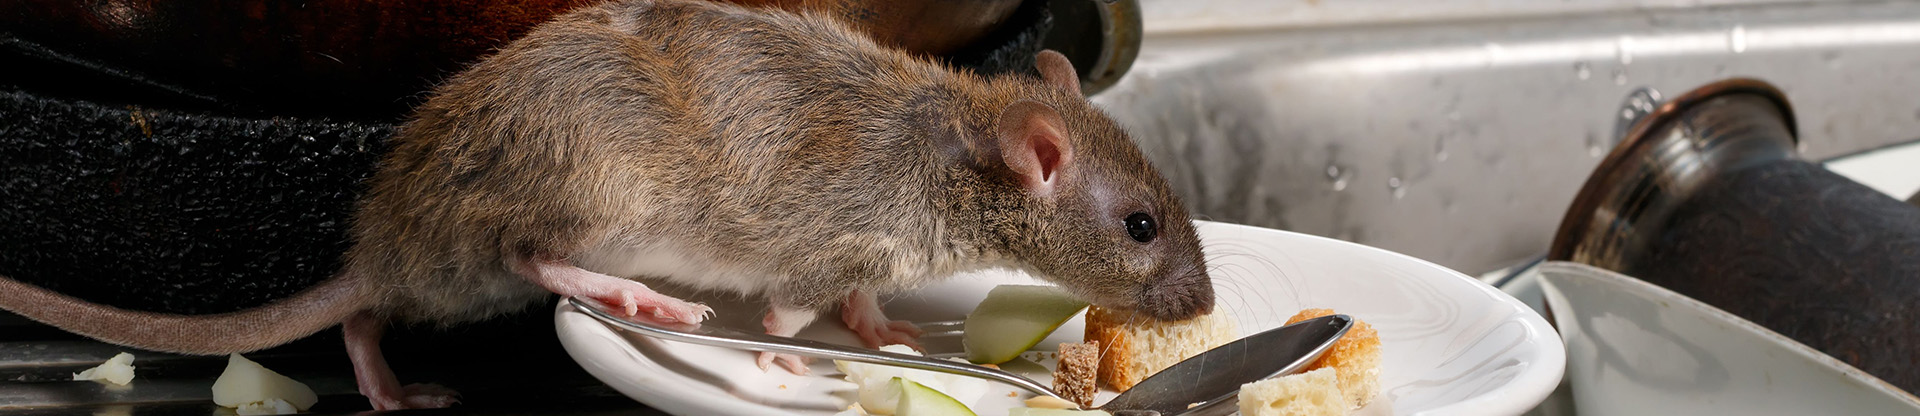 residential and commercial pest control for rodents